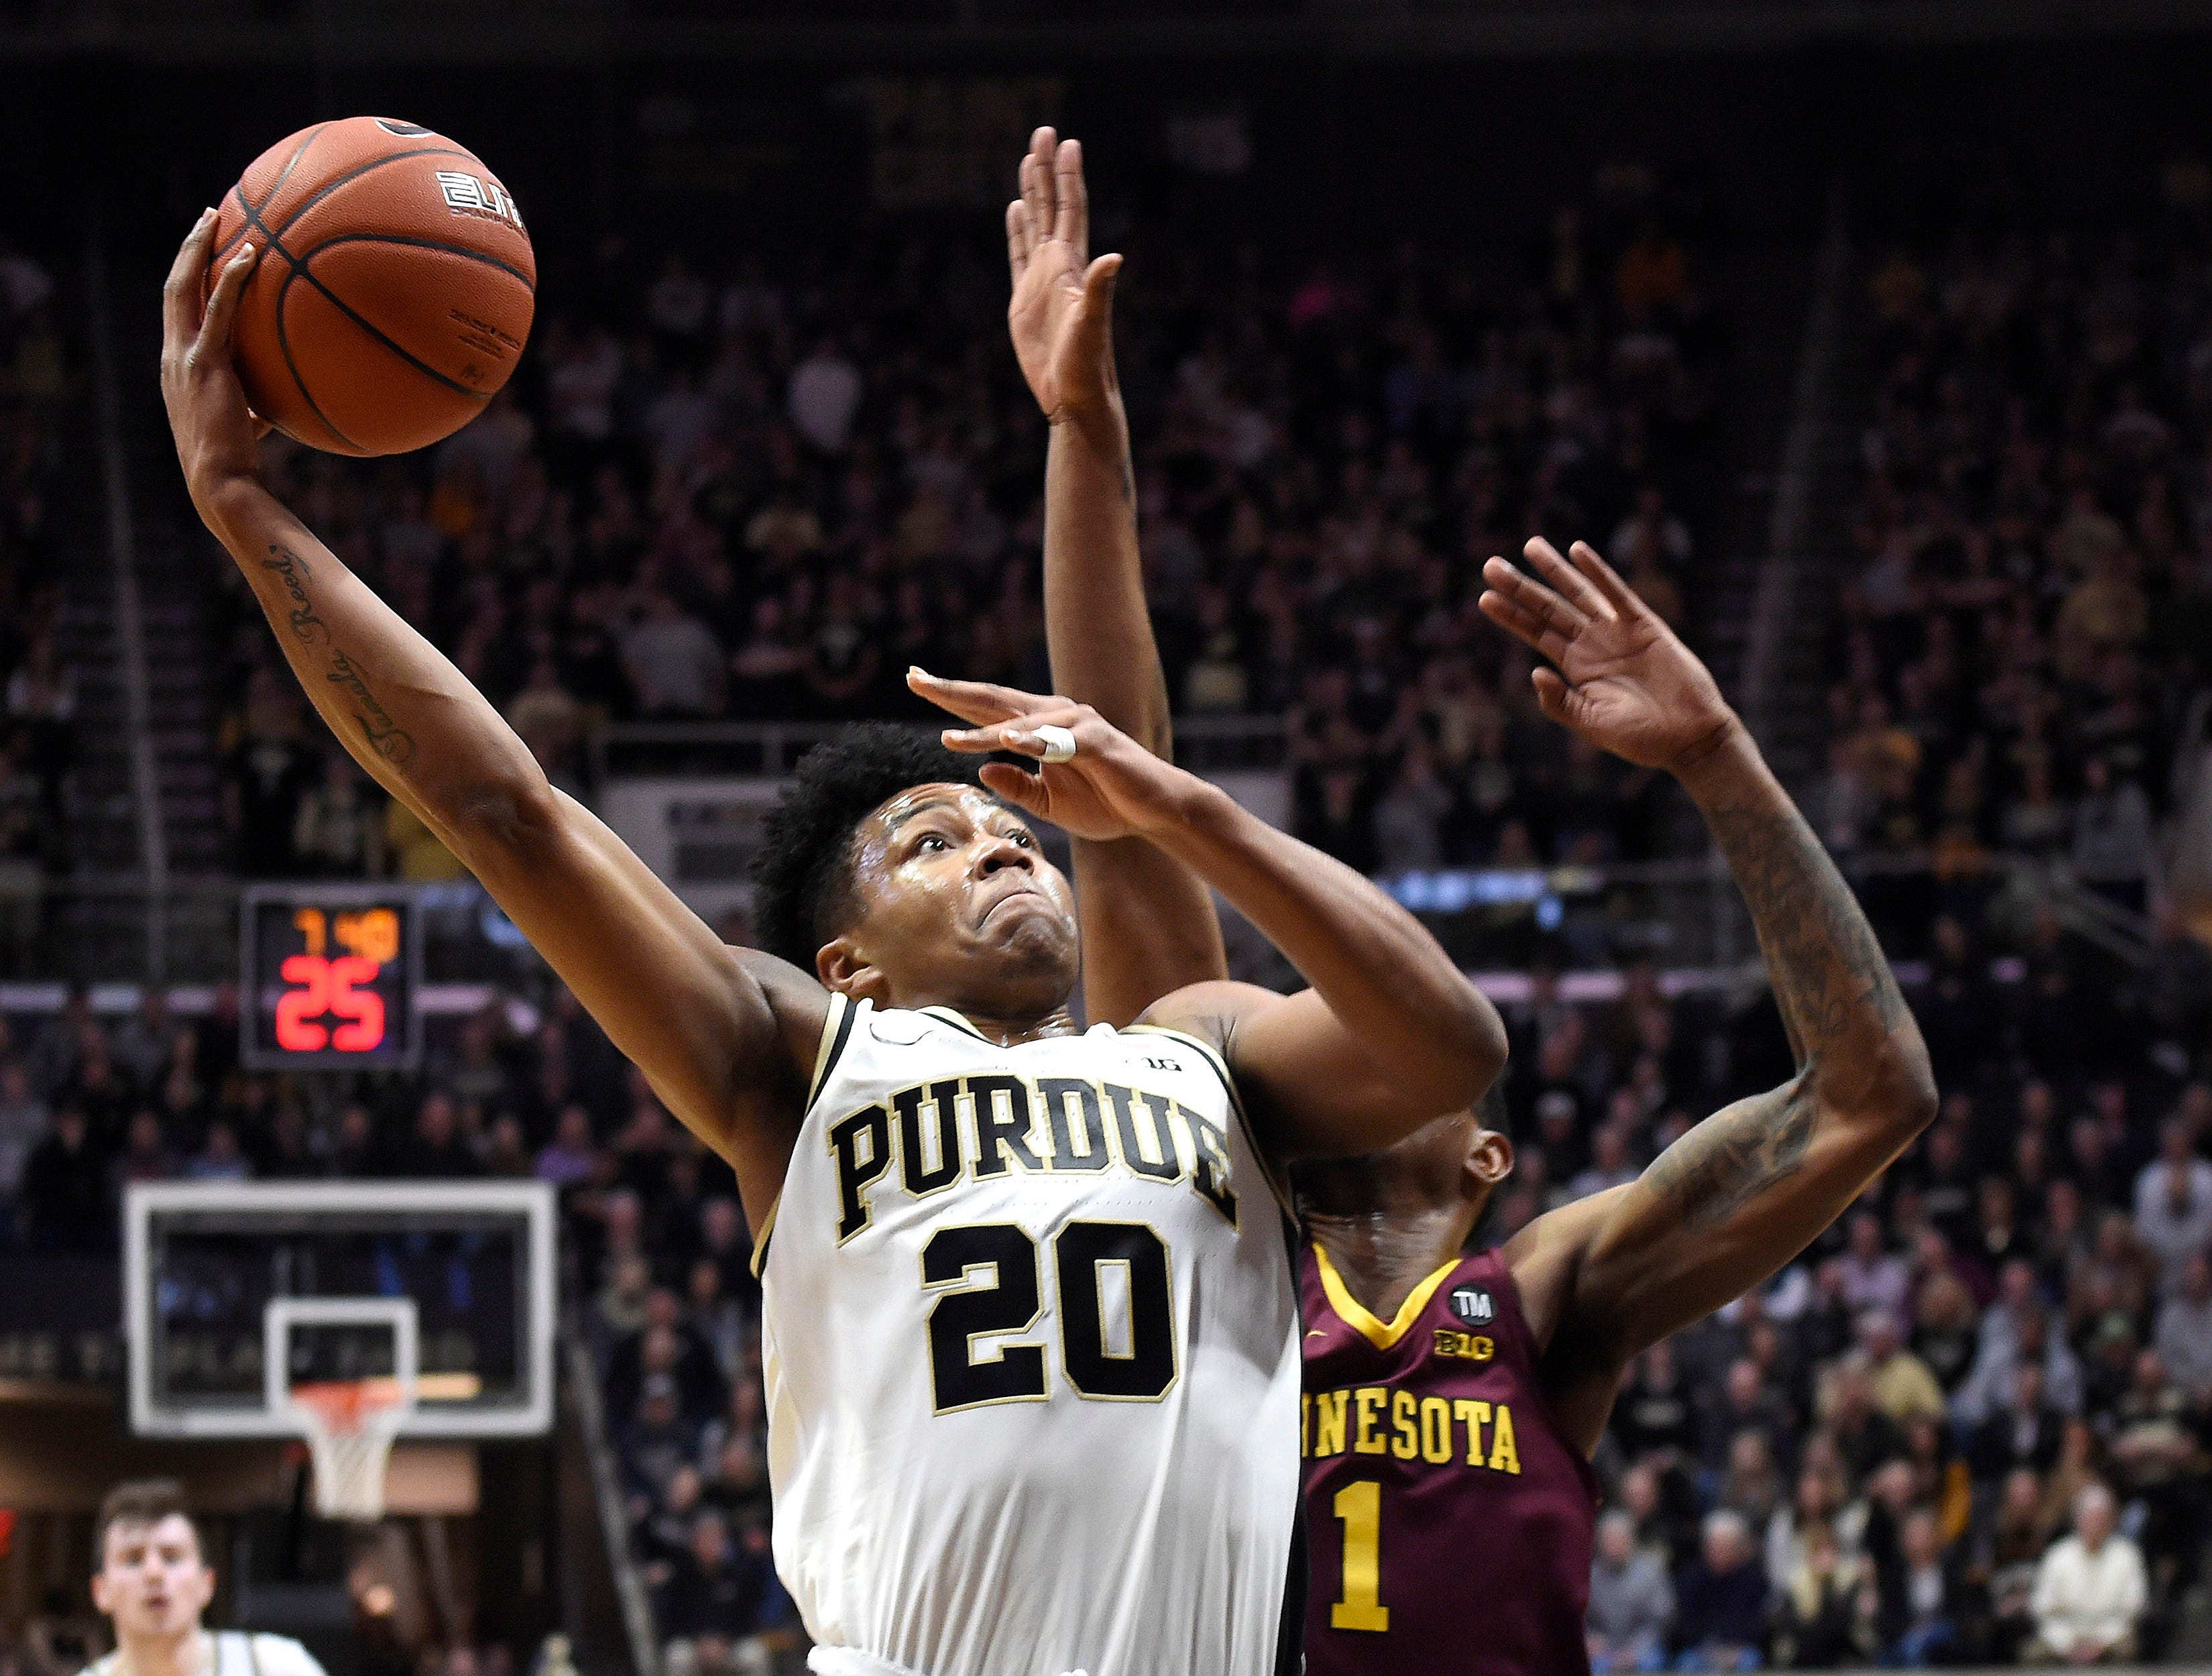 Feb 3, 2019; West Lafayette, IN, USA; Purdue Boilermakers guard Nojel Eastern (20) shoots the ball as Minnesota Golden Gophers guard Dupree McBrayer (1) defends in the first half at Mackey Arena. Mandatory Credit: Sandra Dukes-USA TODAY Sports